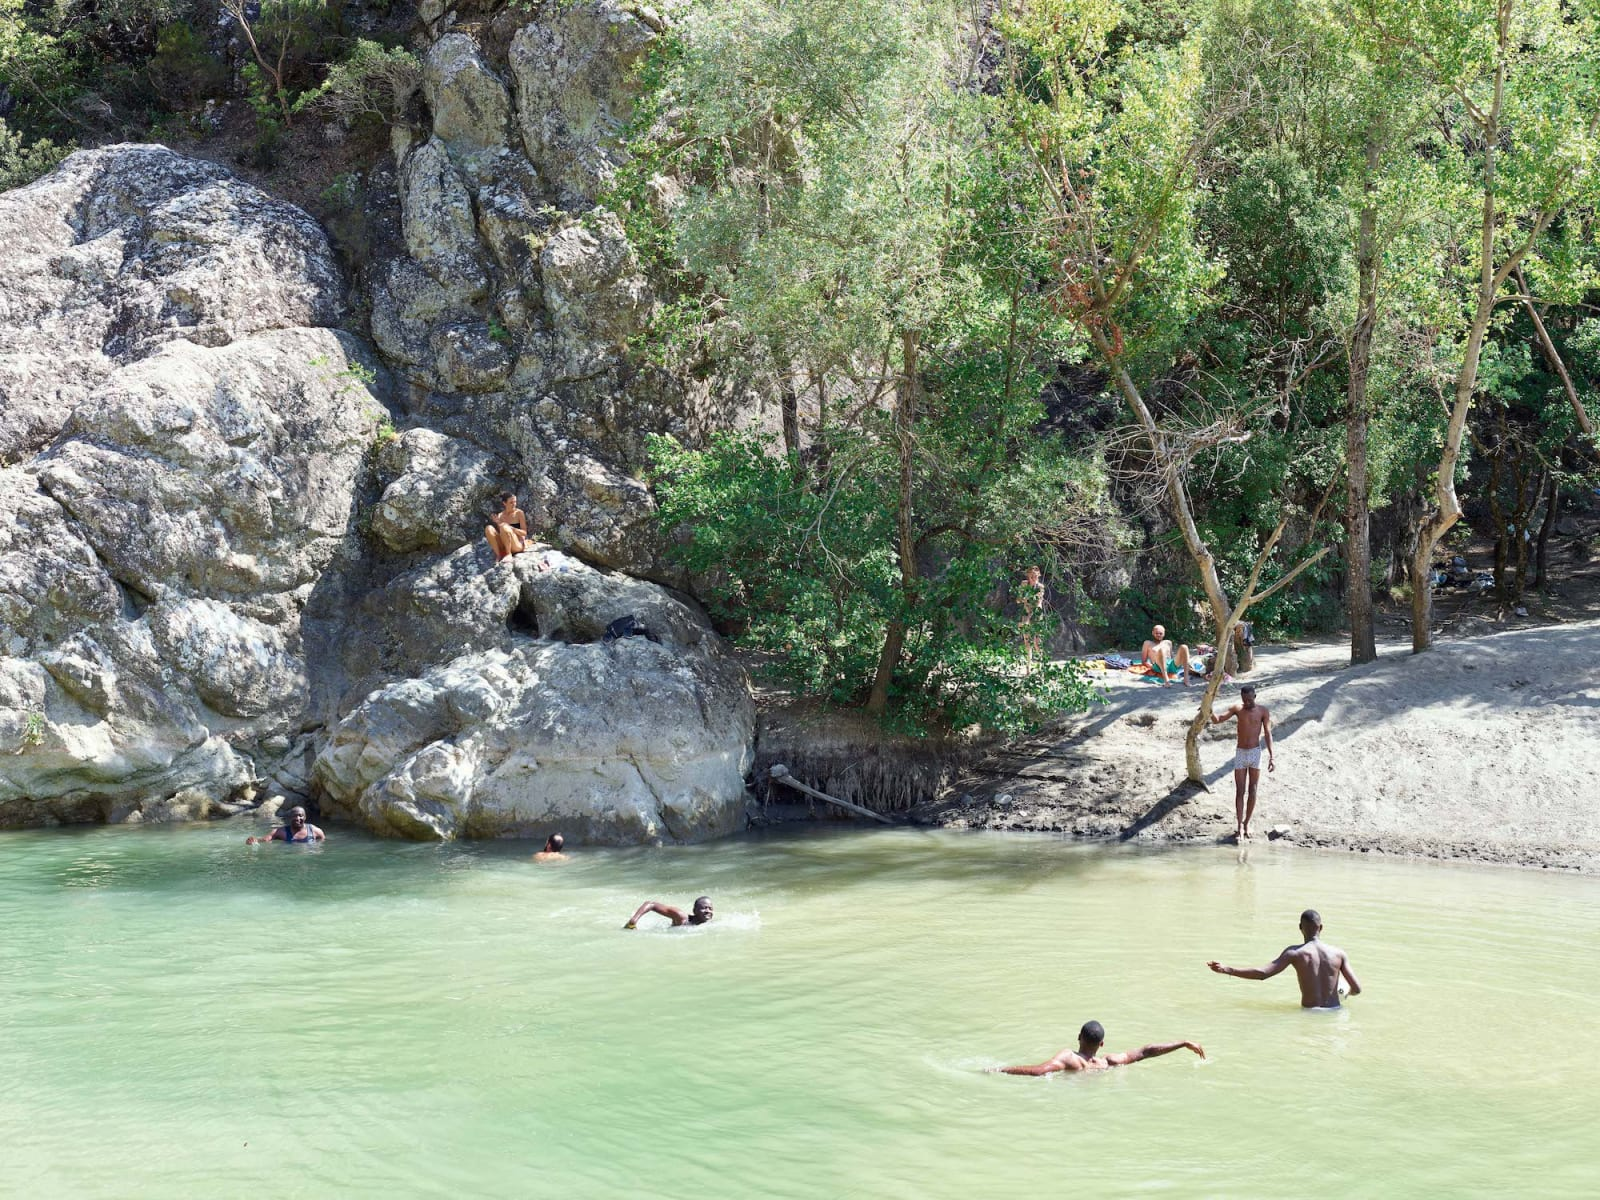 Three swimmers in green-tinted water with a girl sitting on a boulder, by Massimo Vitali